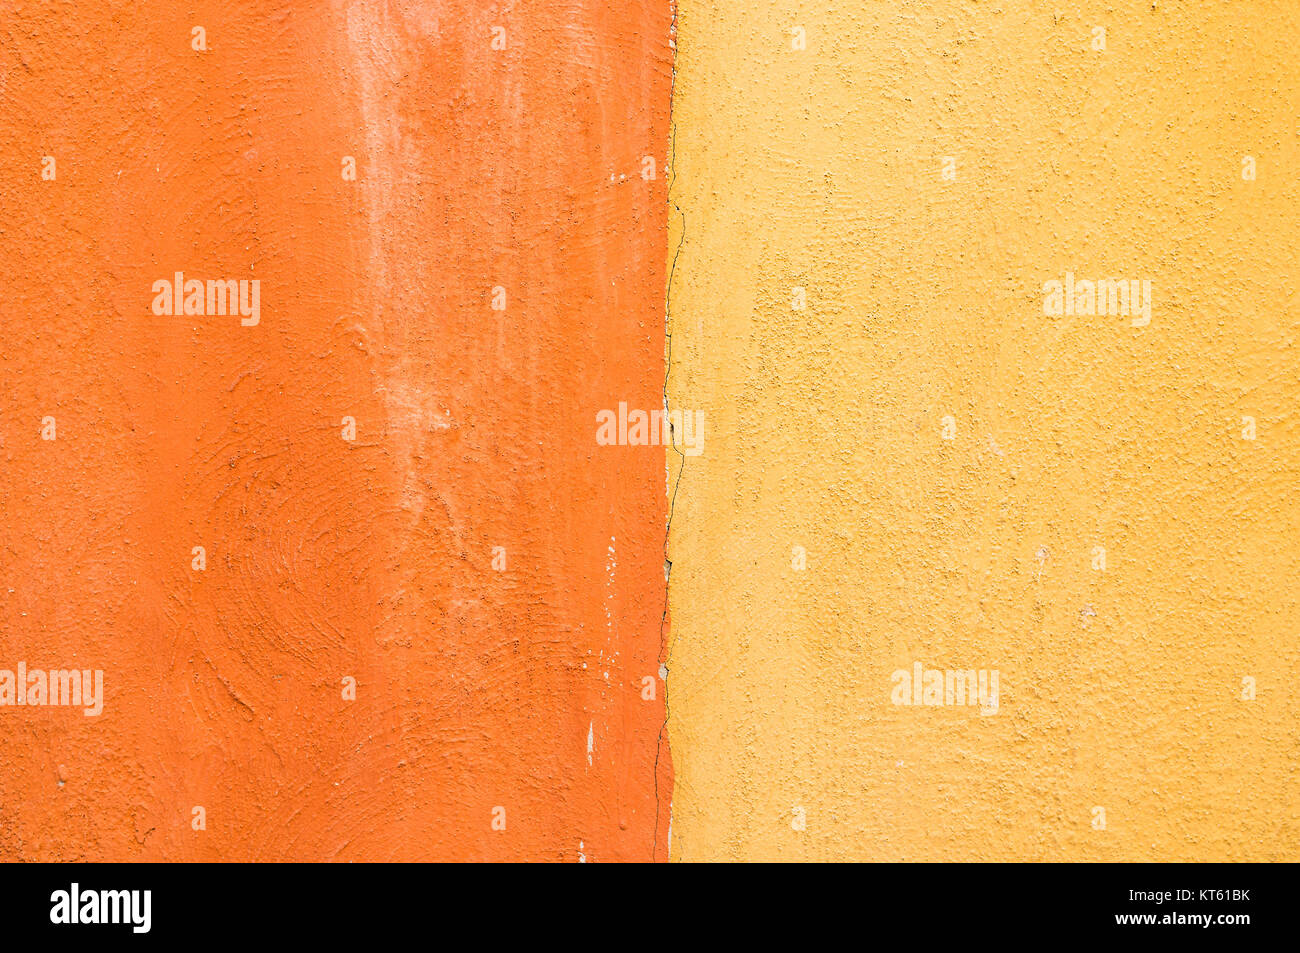 Close-up yellow and orange color concrete wall background. texture ...